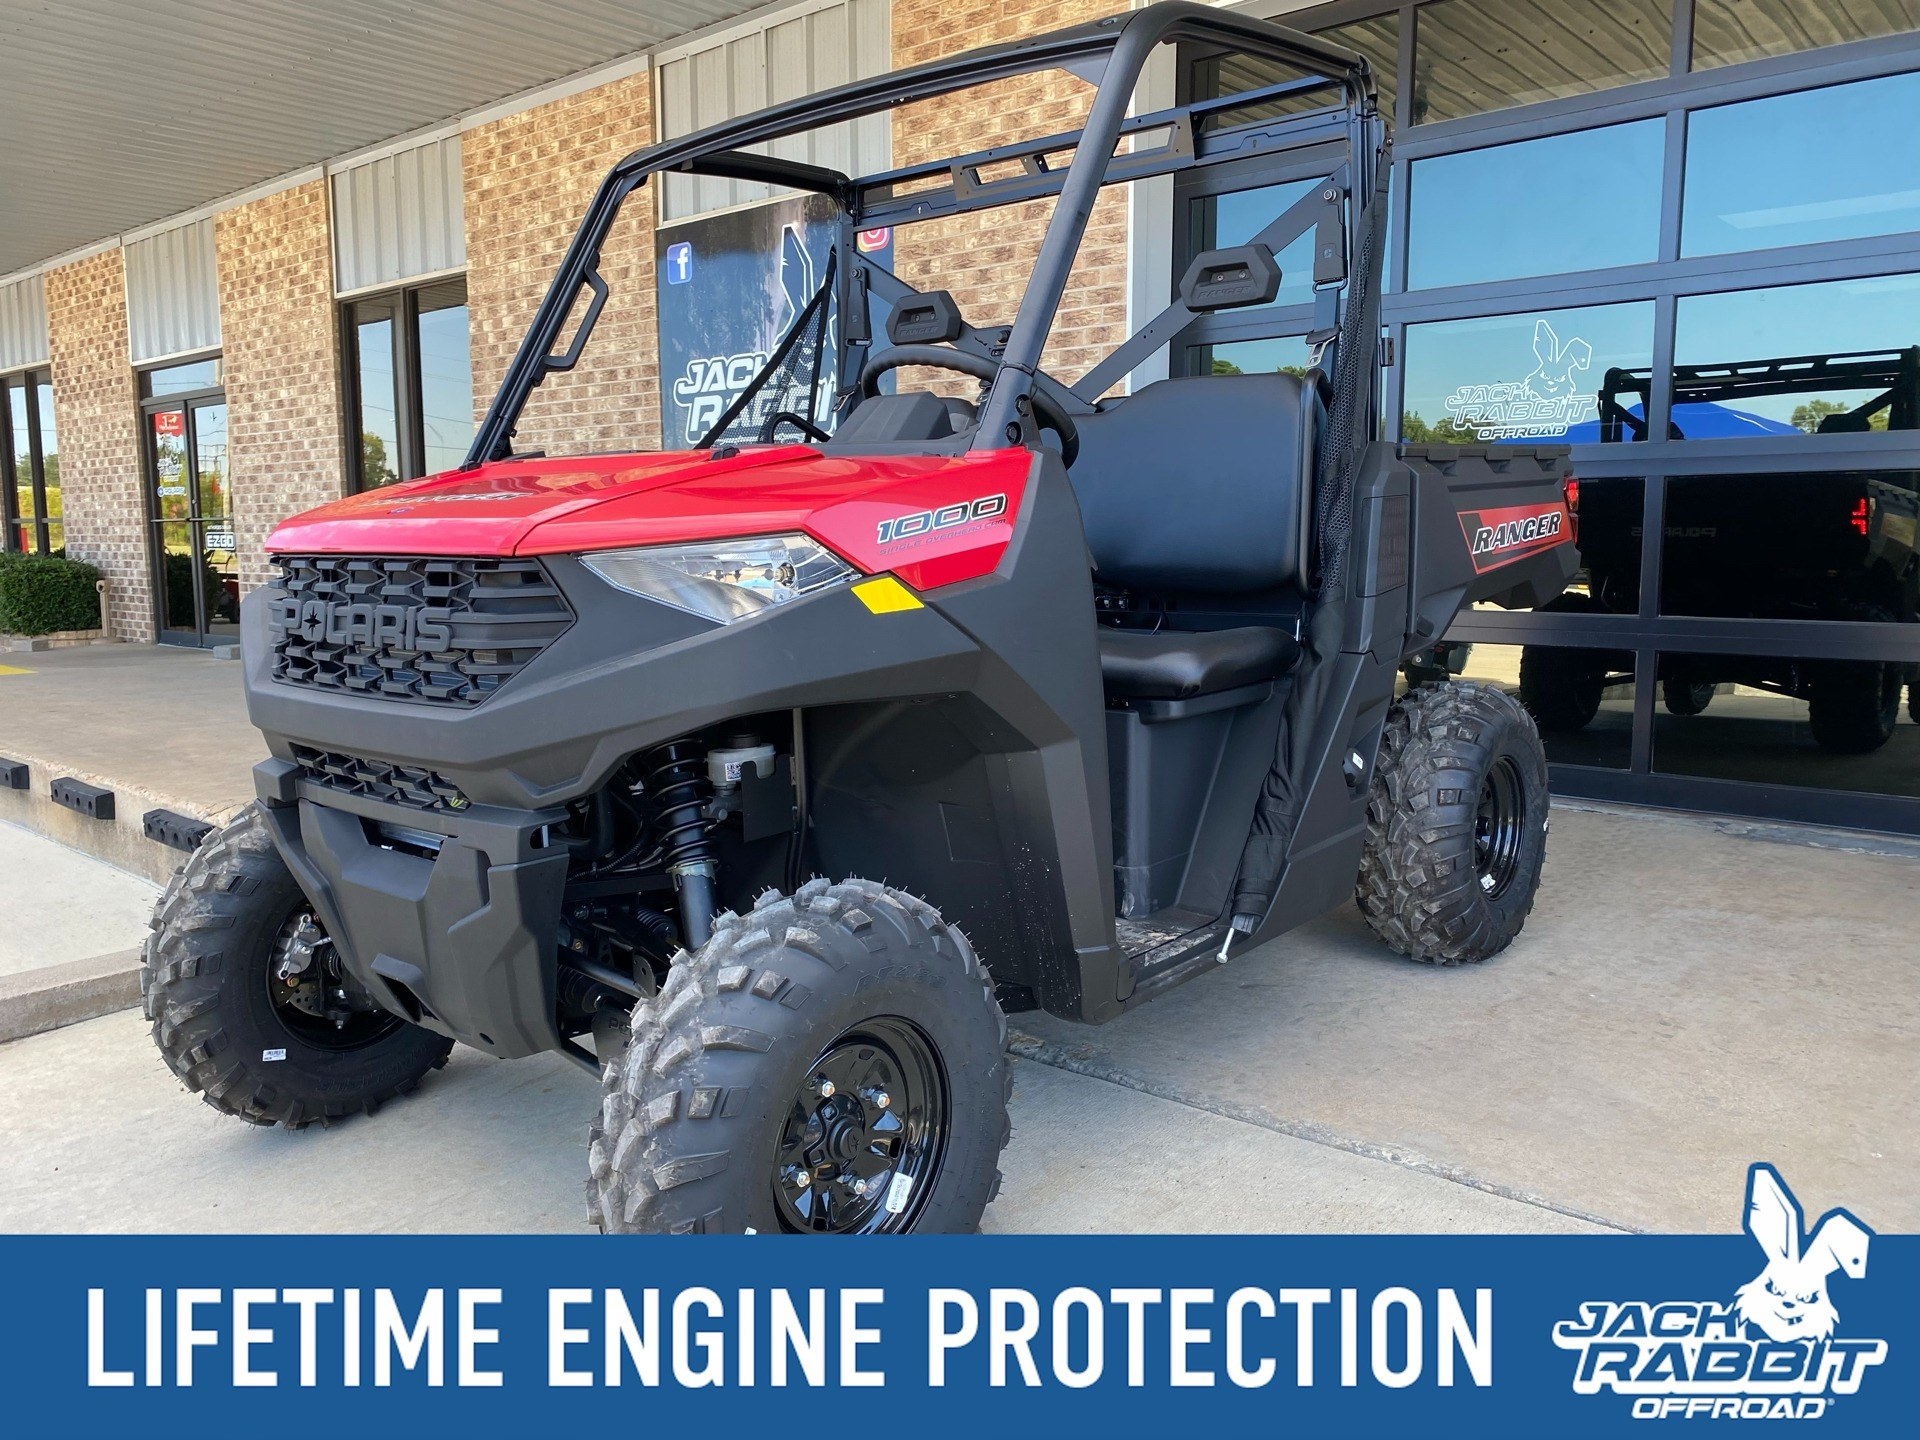 2021 Polaris Ranger 1000 in Marshall, Texas - Photo 1